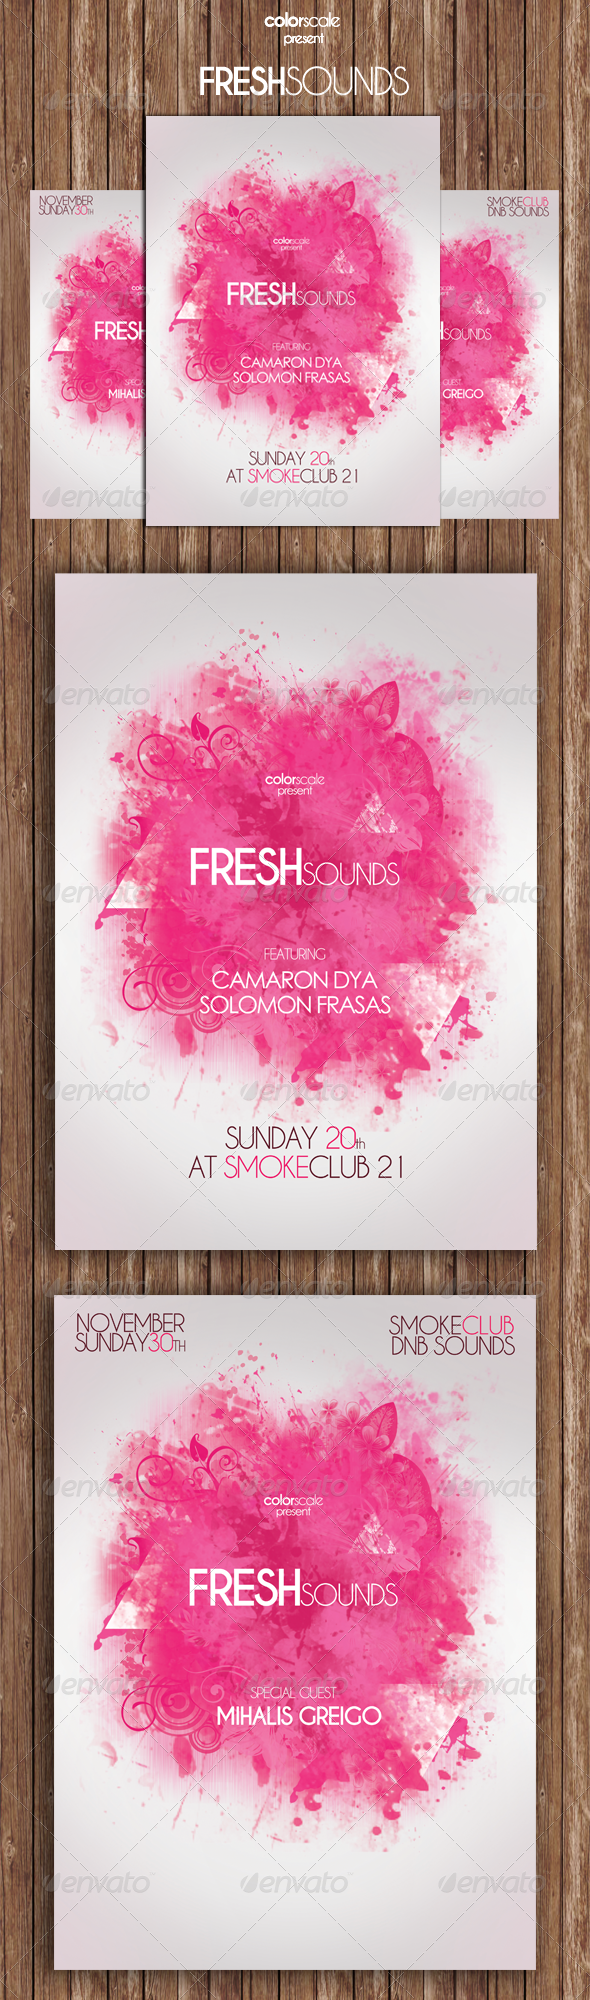 GraphicRiver FreshSounds Flyer 5993944